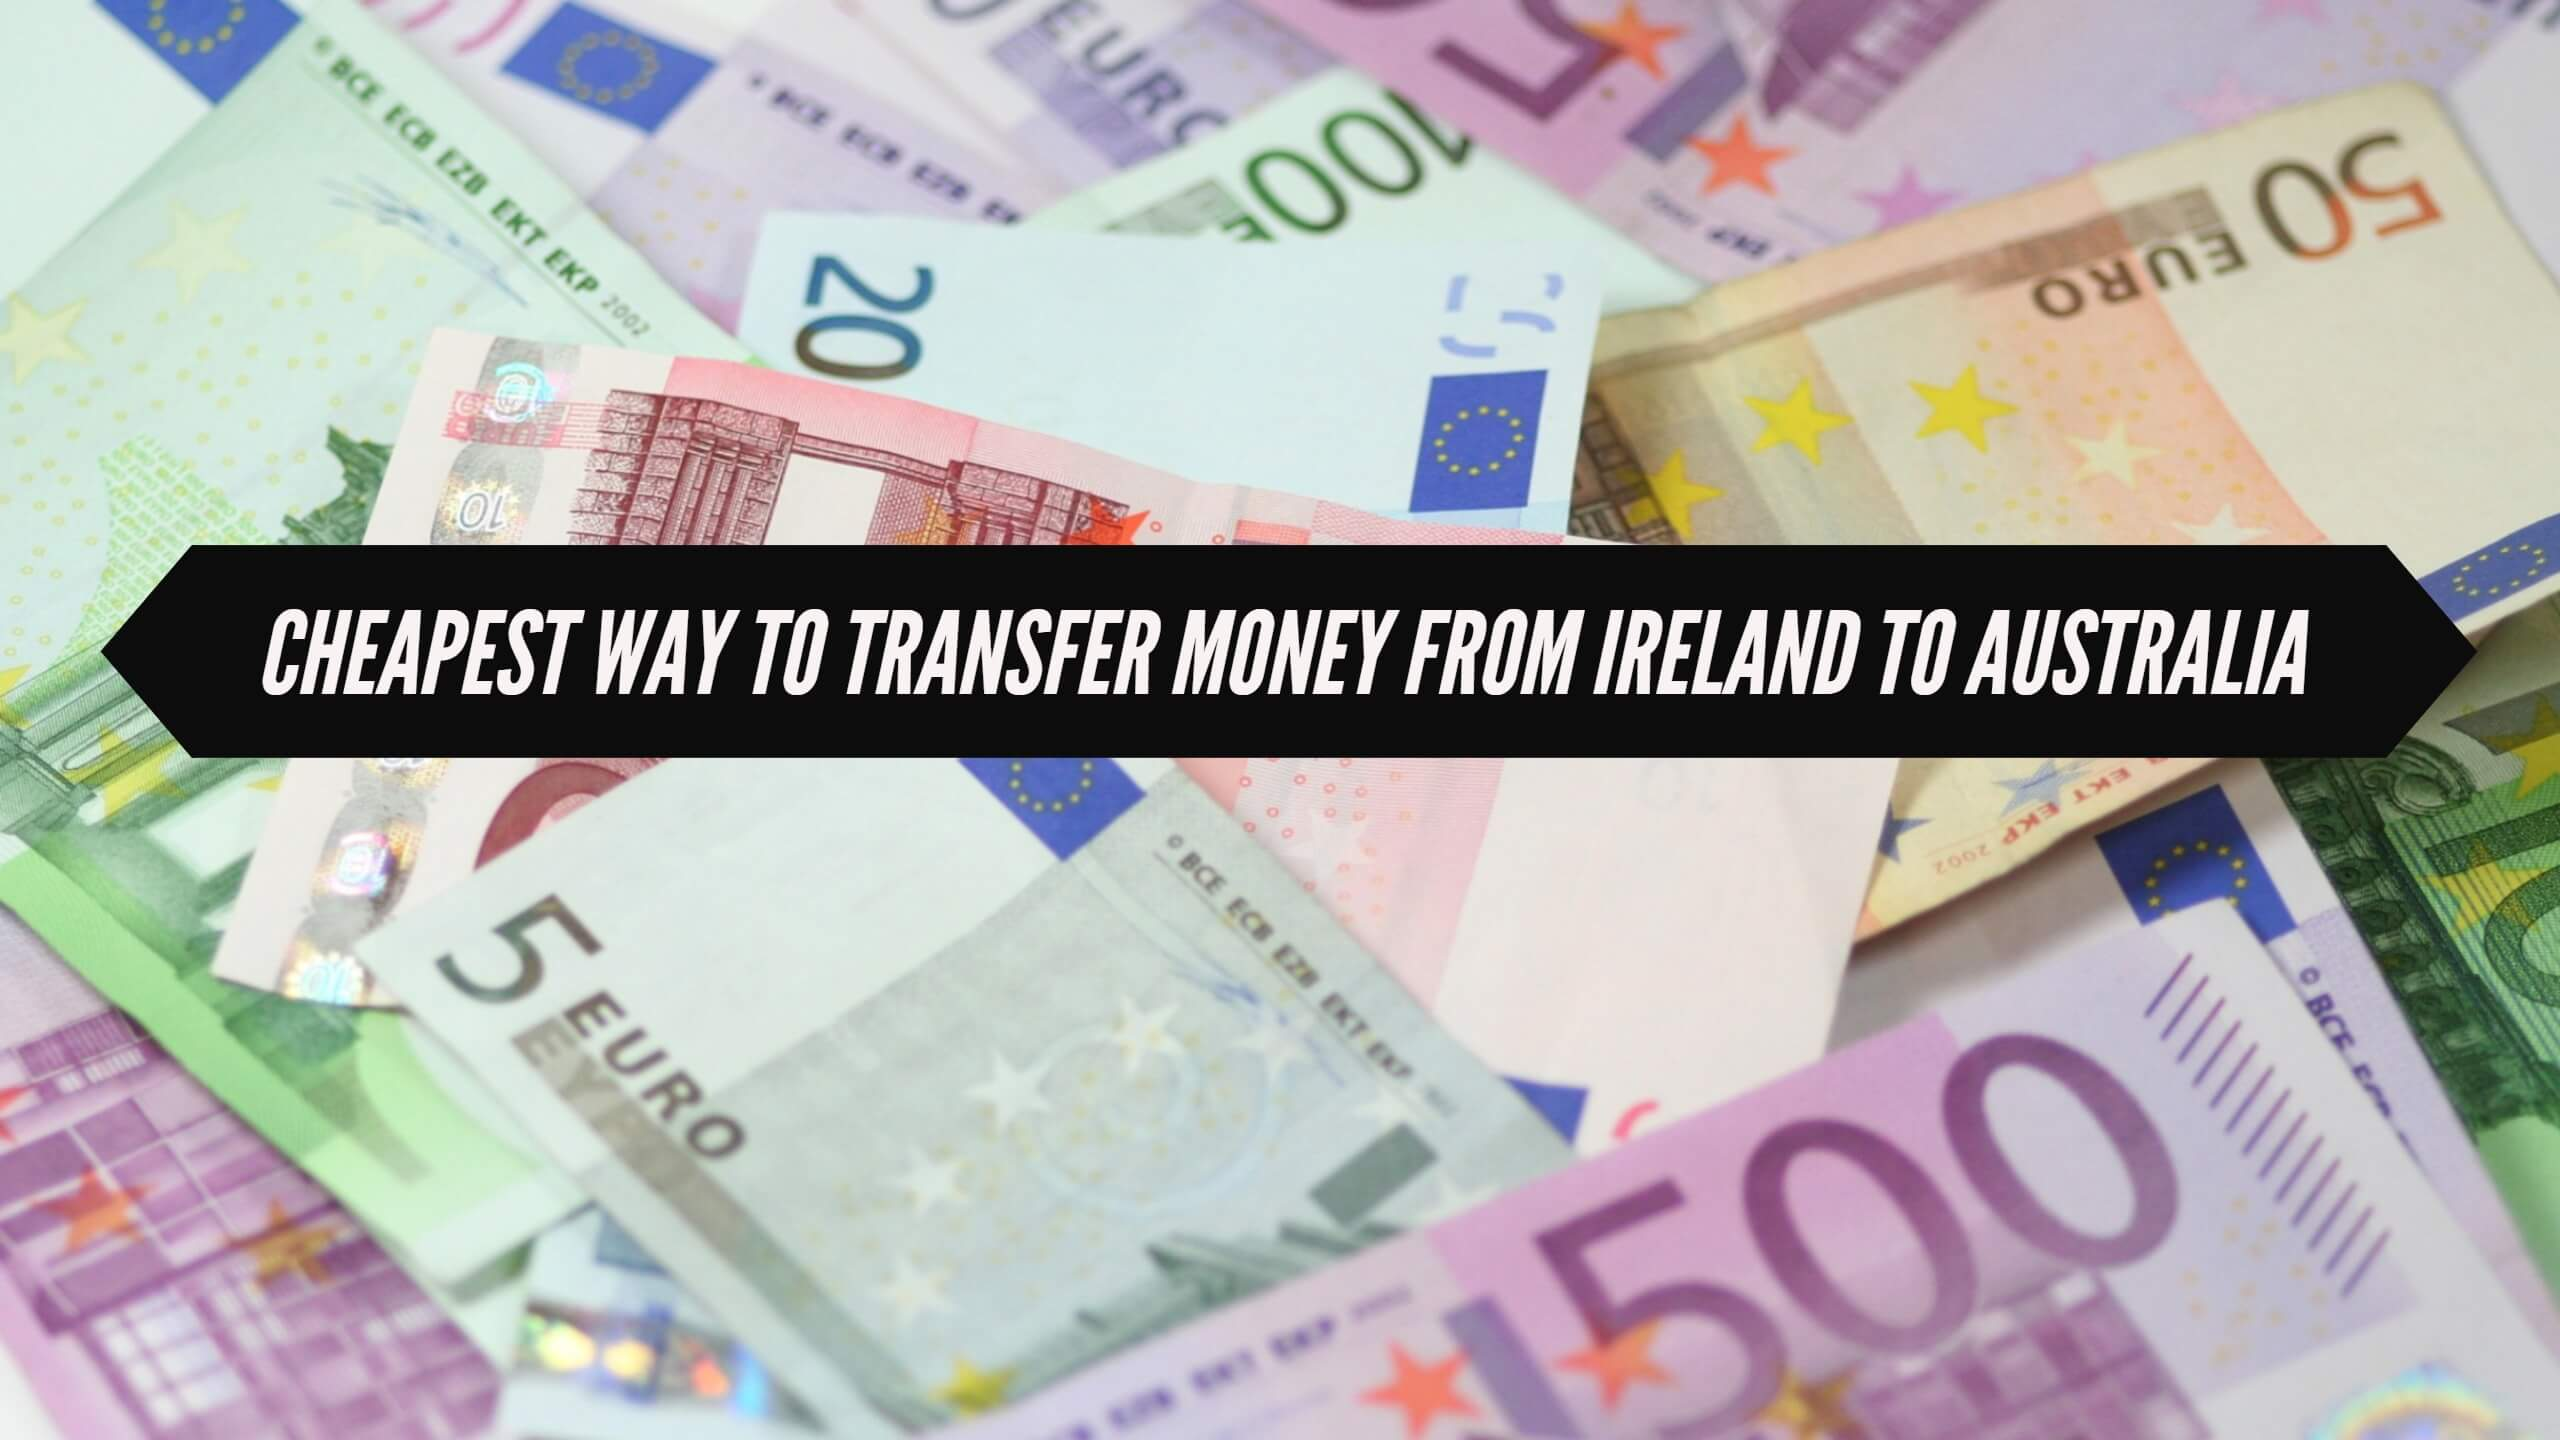 Est Way To Transfer Money From Ireland Australia Irish Around Oz